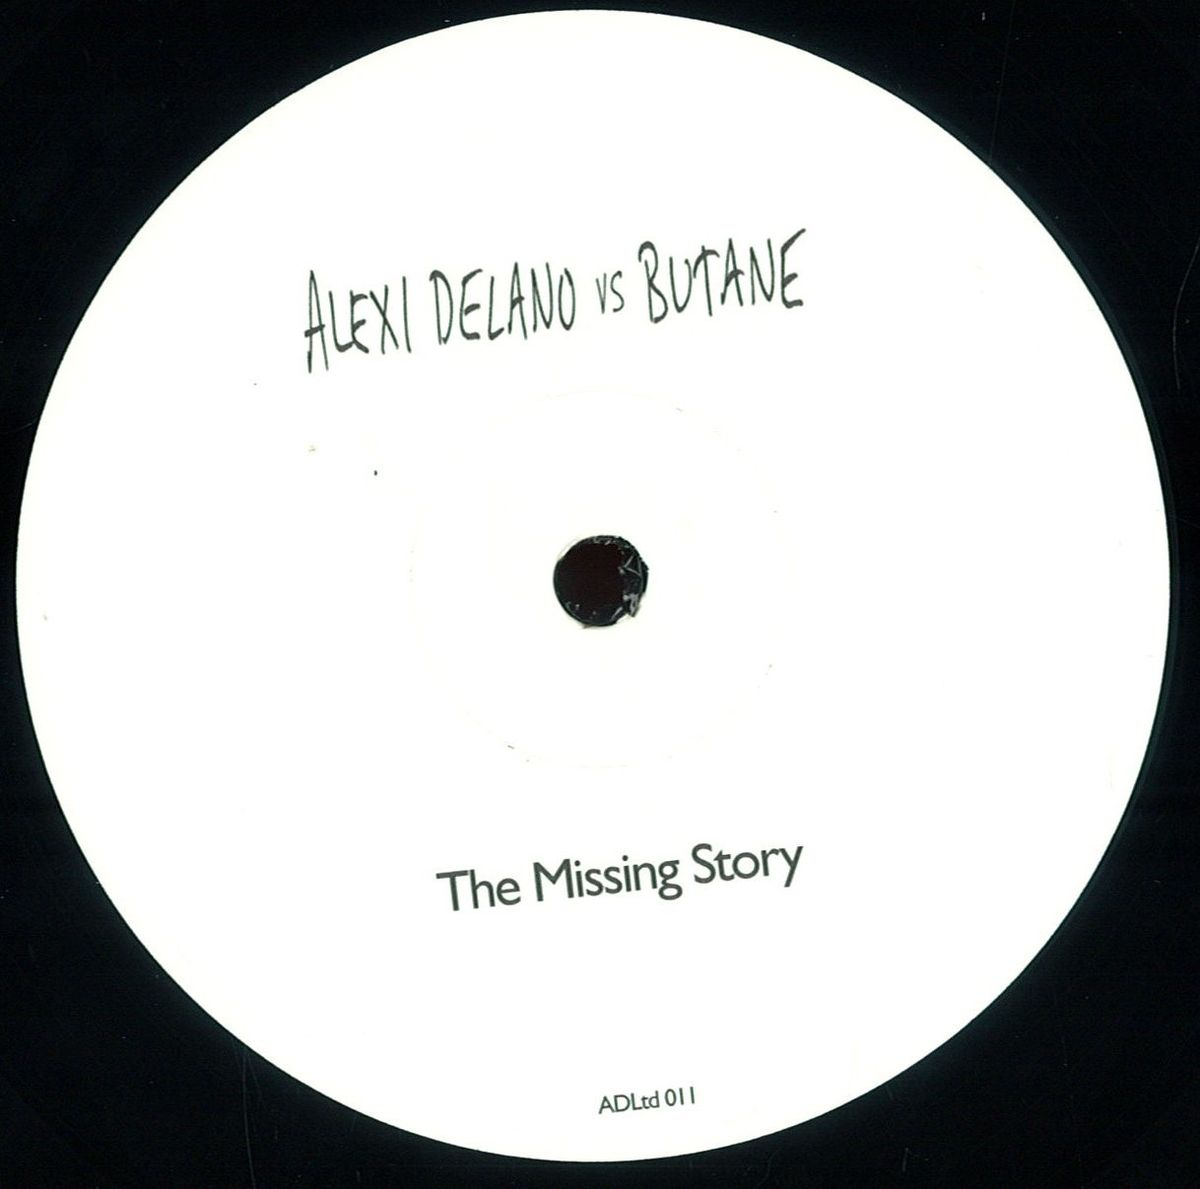 Alexi Delano vs. Butane – The Missing Story (Alexi Delano Limited)